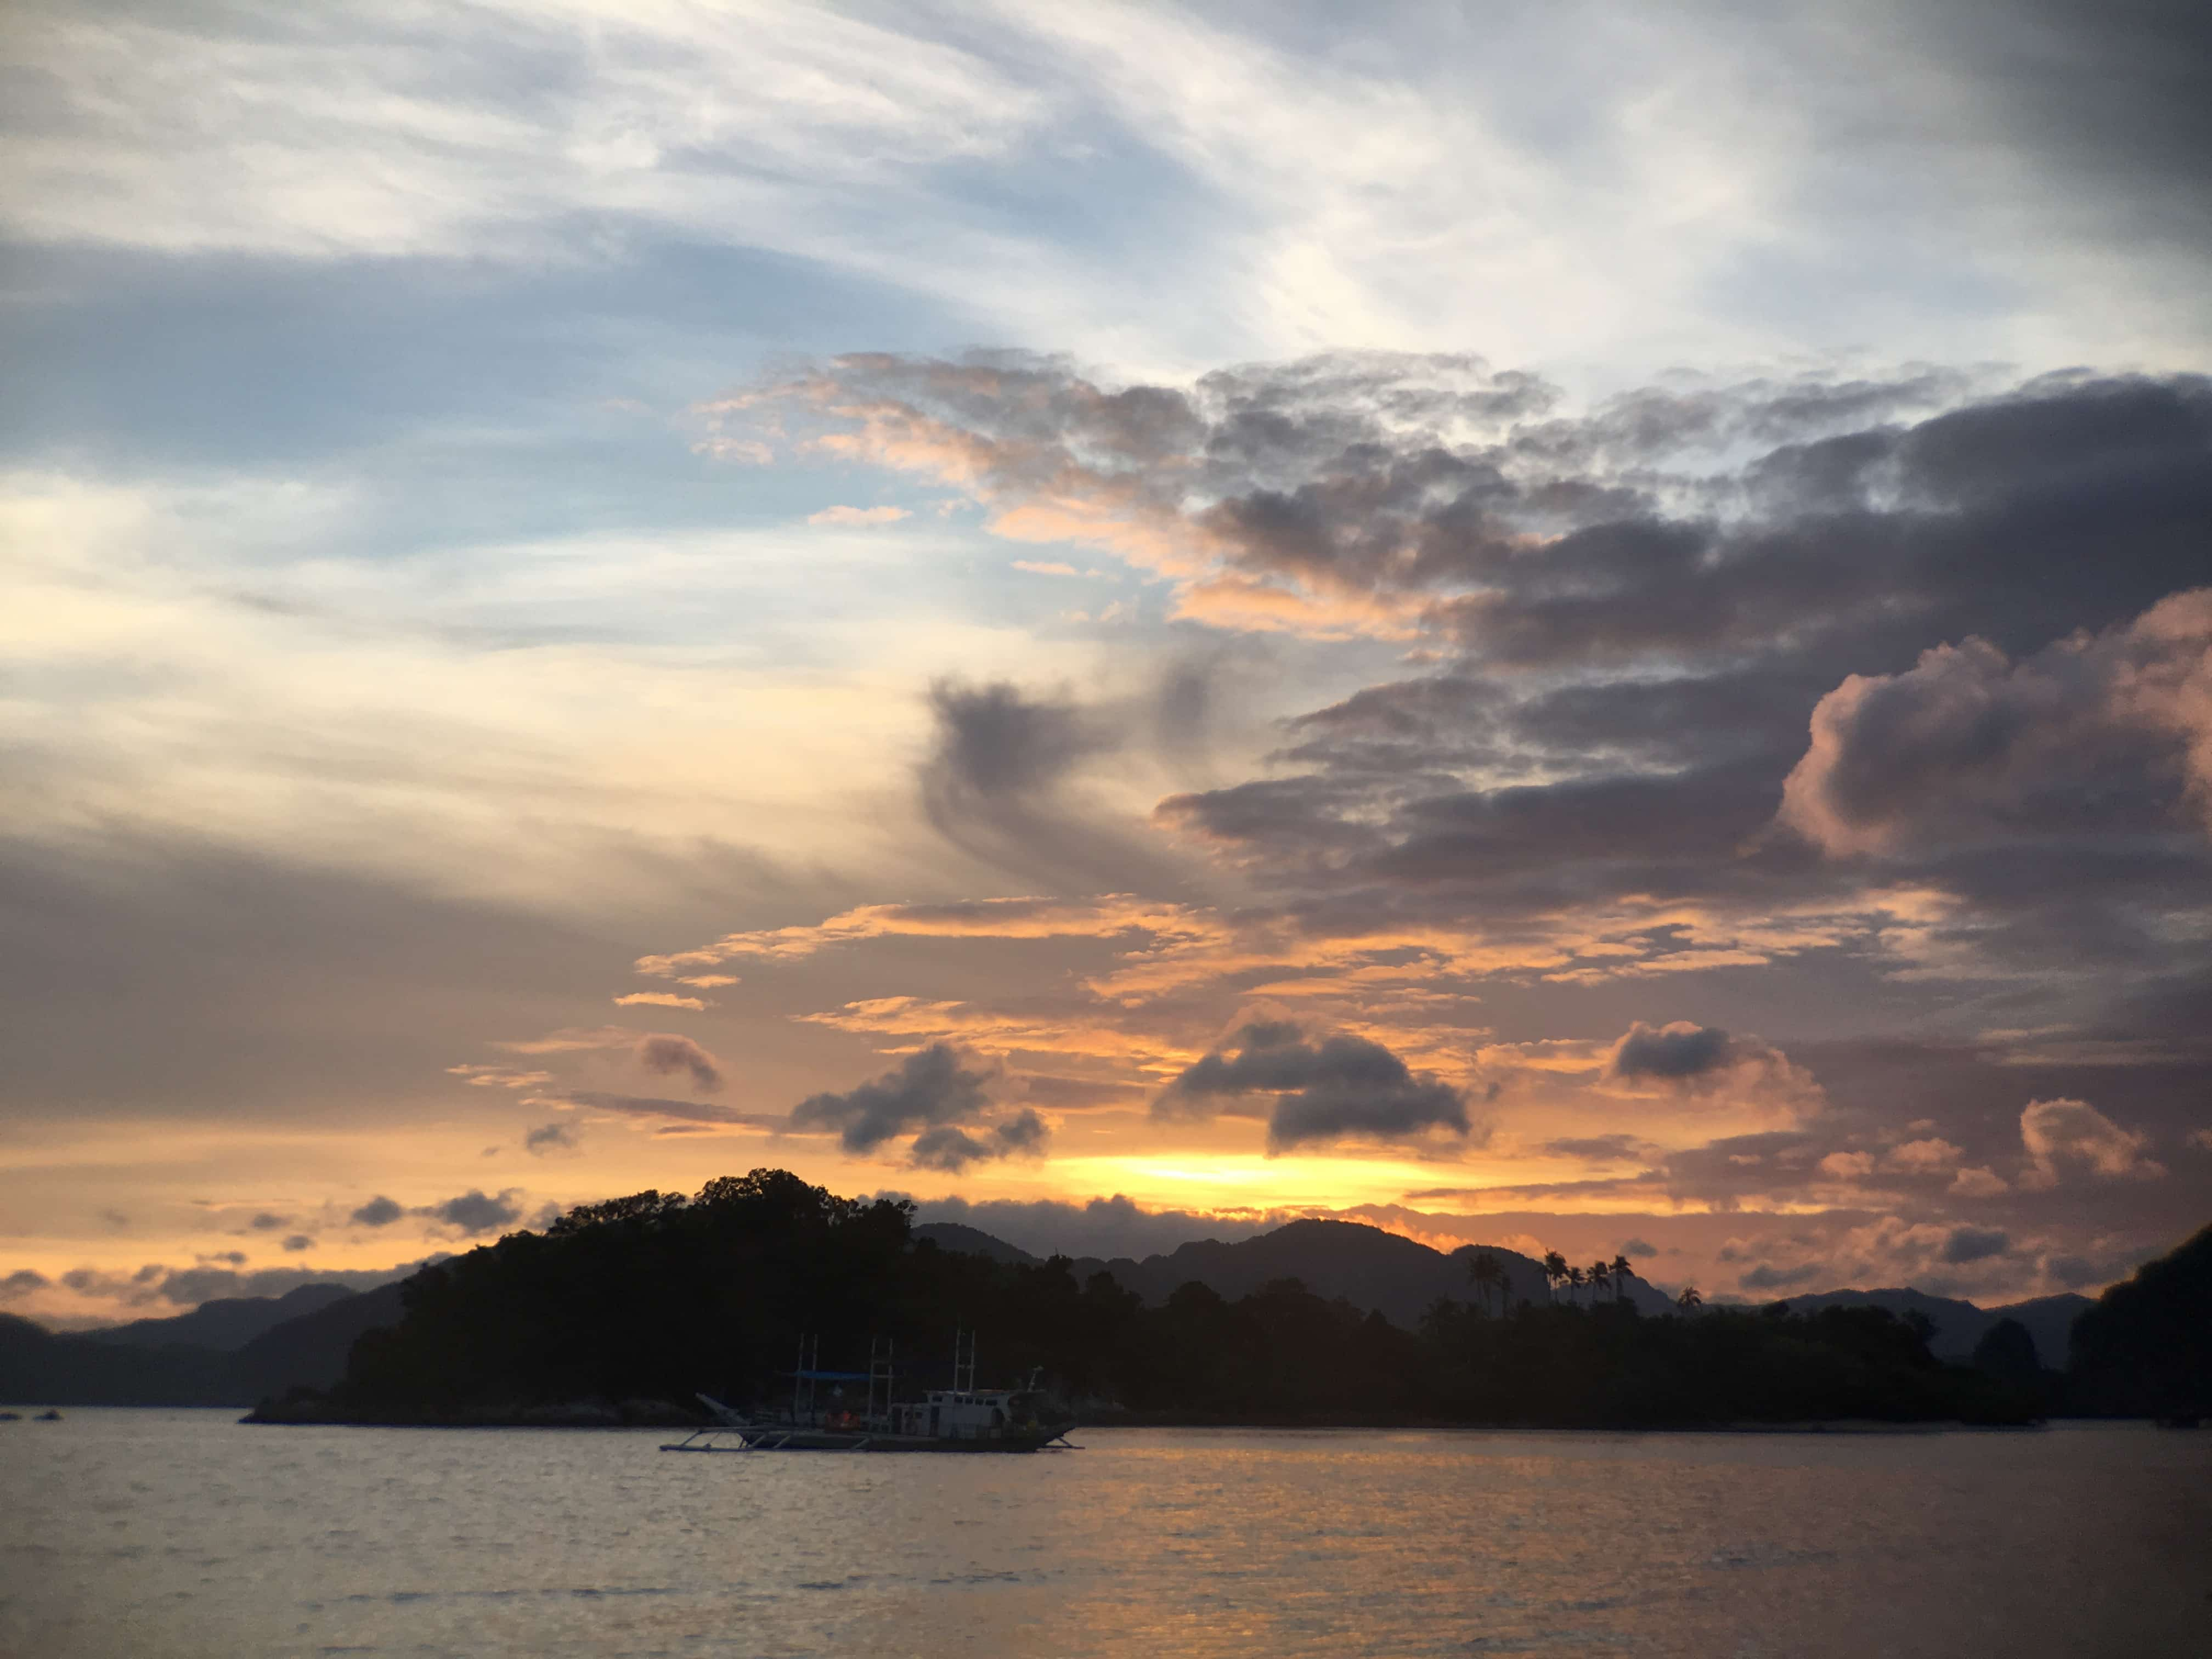 Tours in El Nido: sunrise